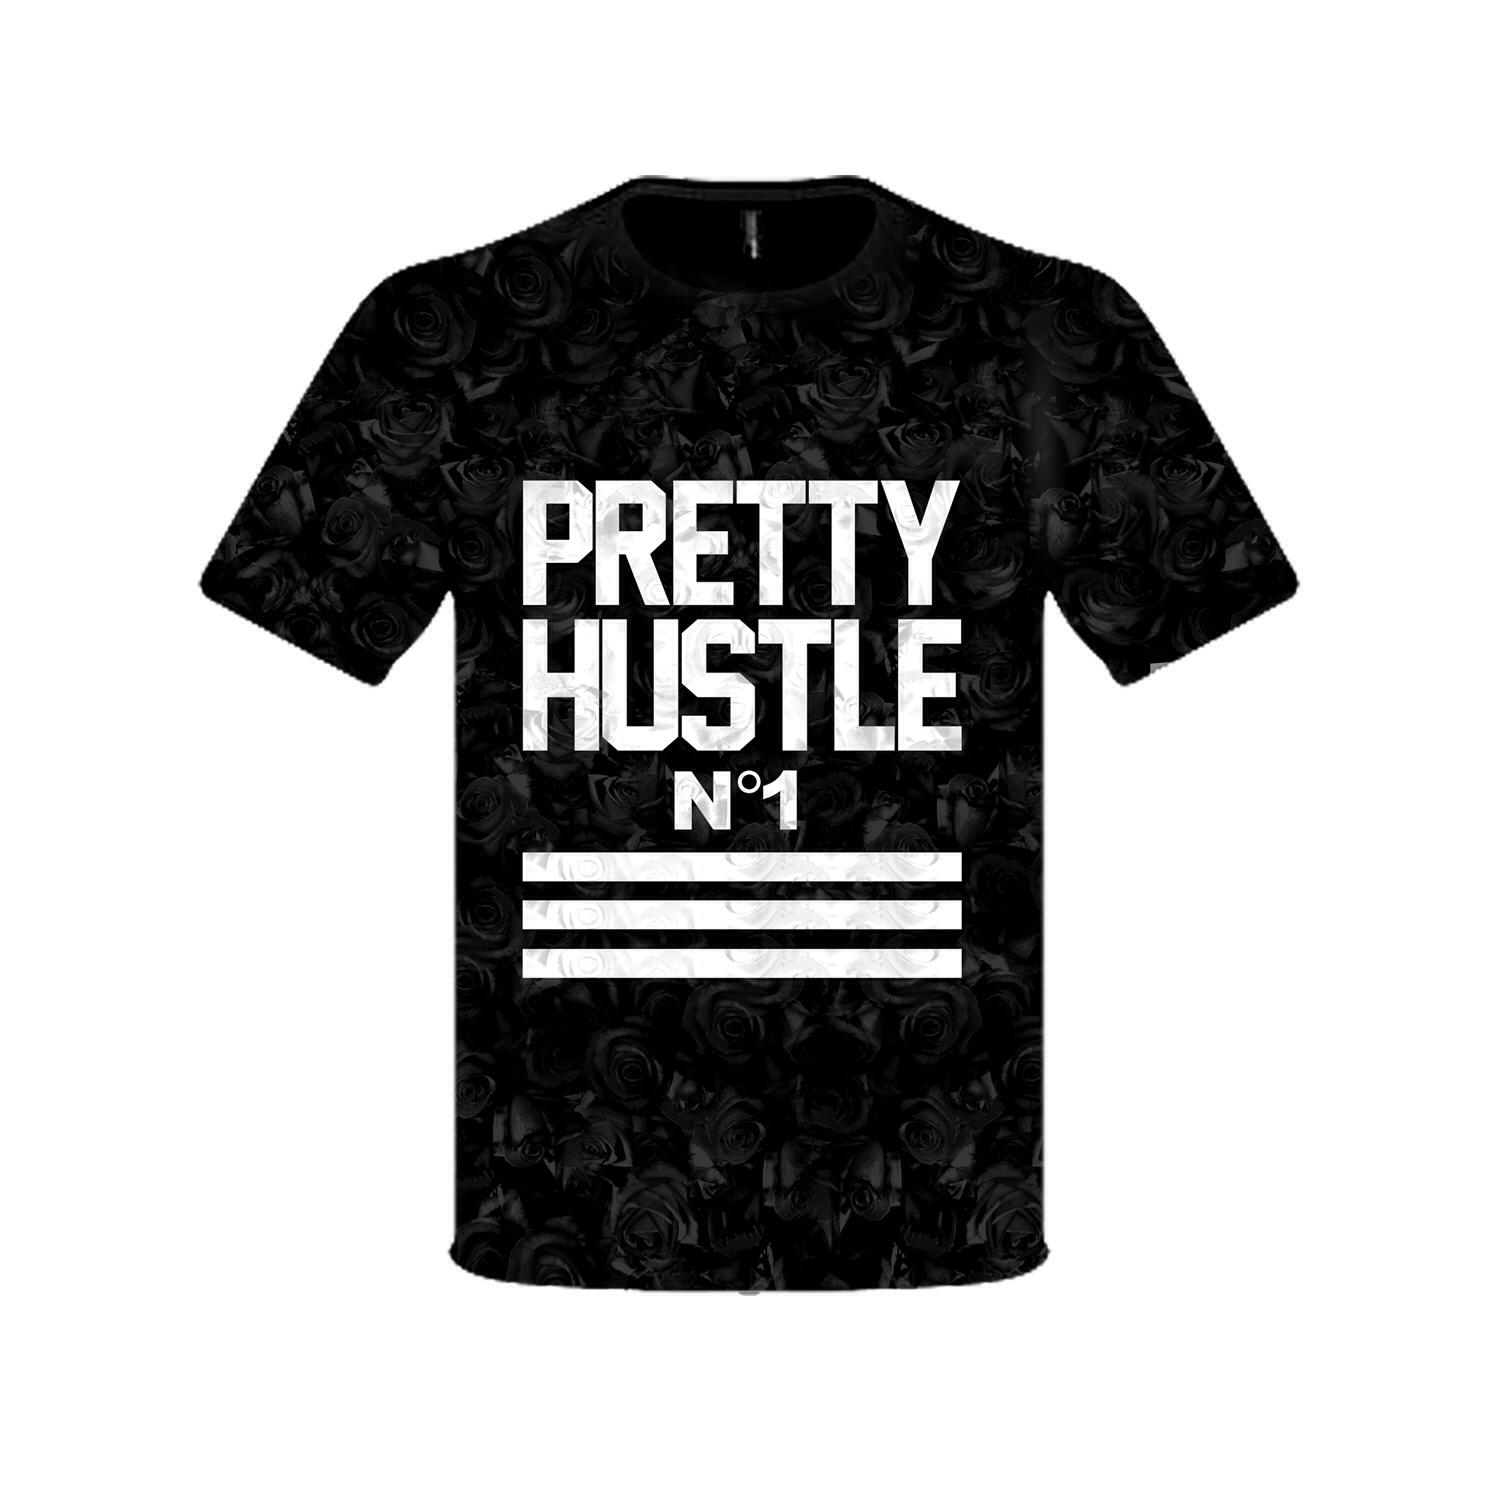 Hustler clothing for woman congratulate, you